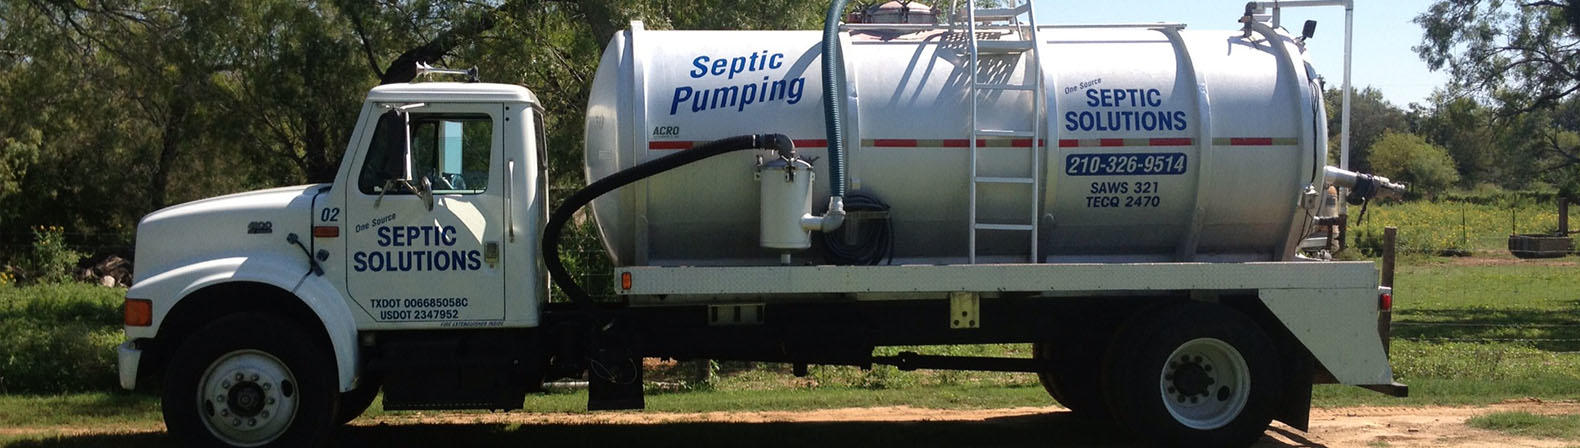 Septic Solutions image 4